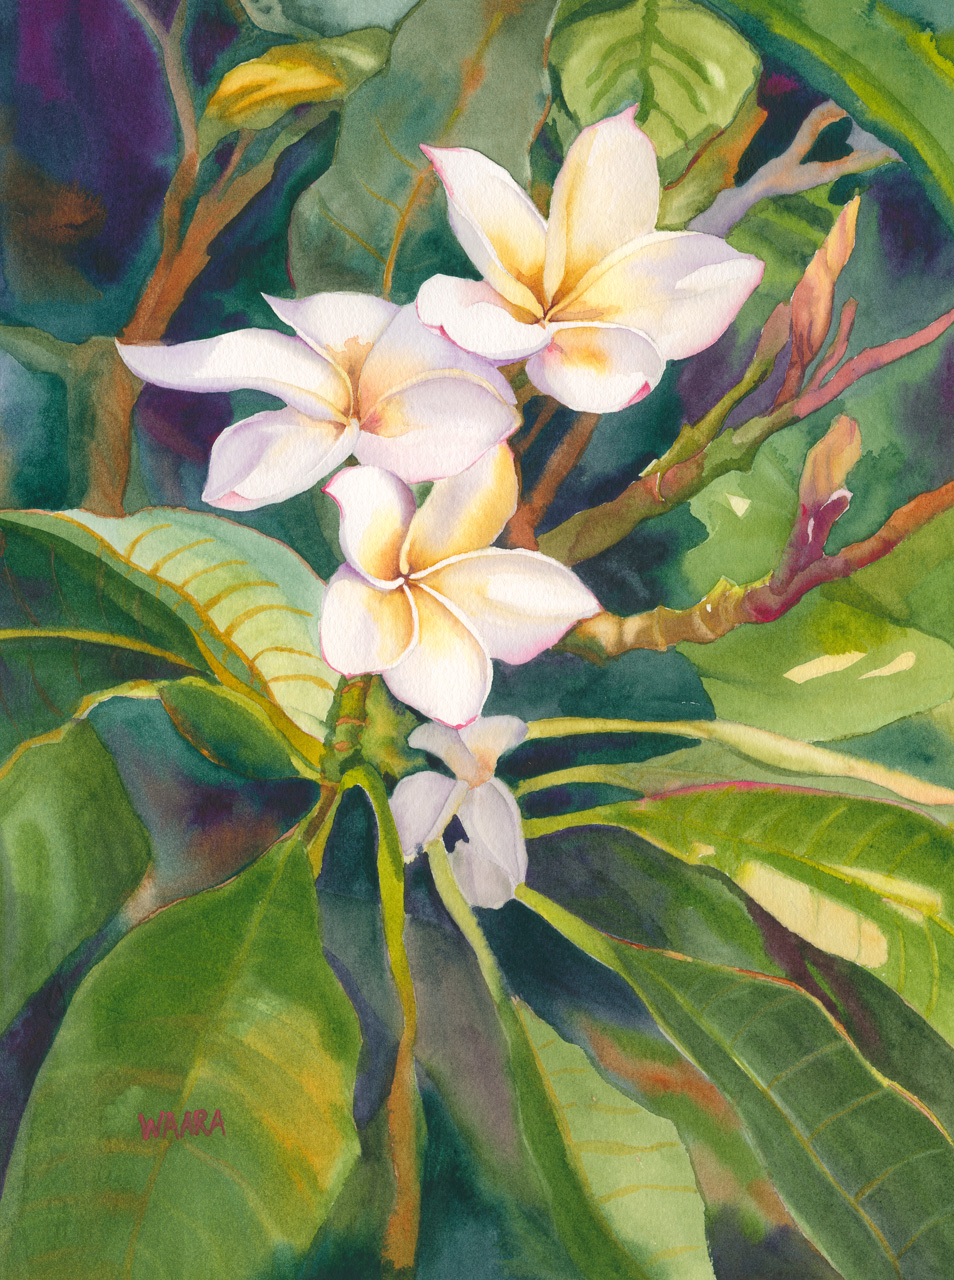 Watercolor painting of white plumeria flowers